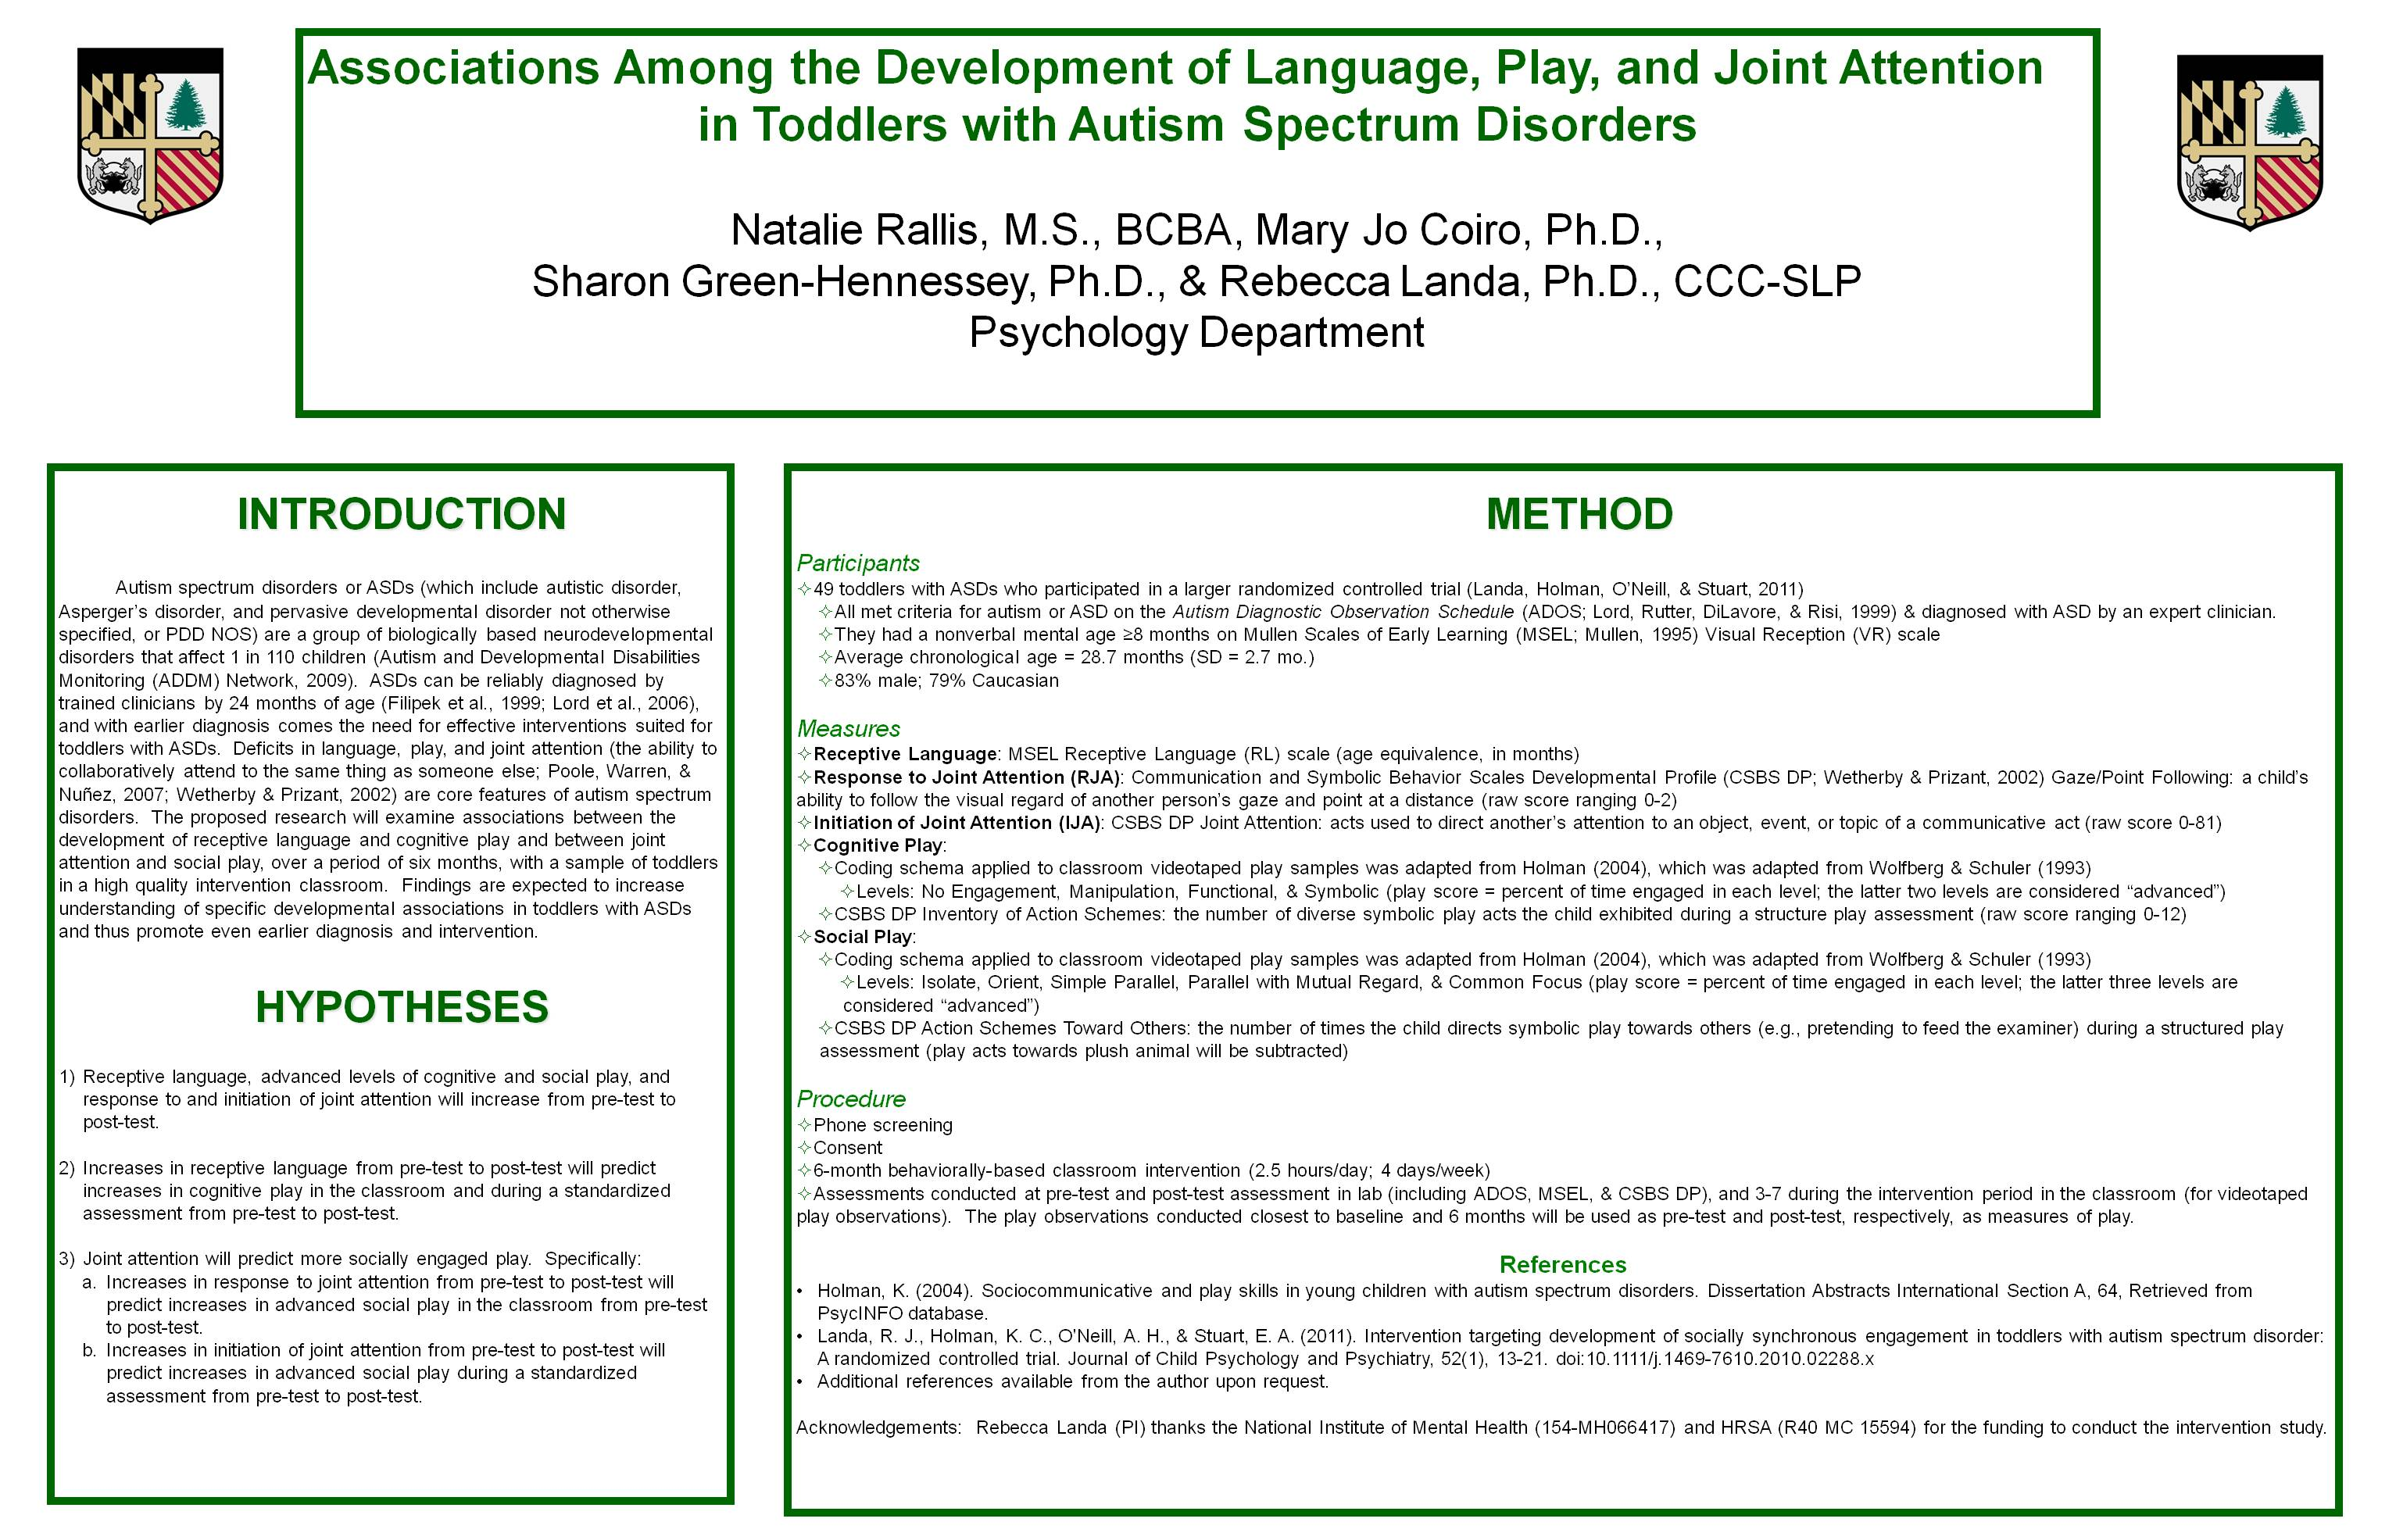 posters 2011 emerging scholars loyola university maryland associations among the development of language play and joint attention in toddlers autism spectrum disorders natalie rallis mary jo coiro ph d